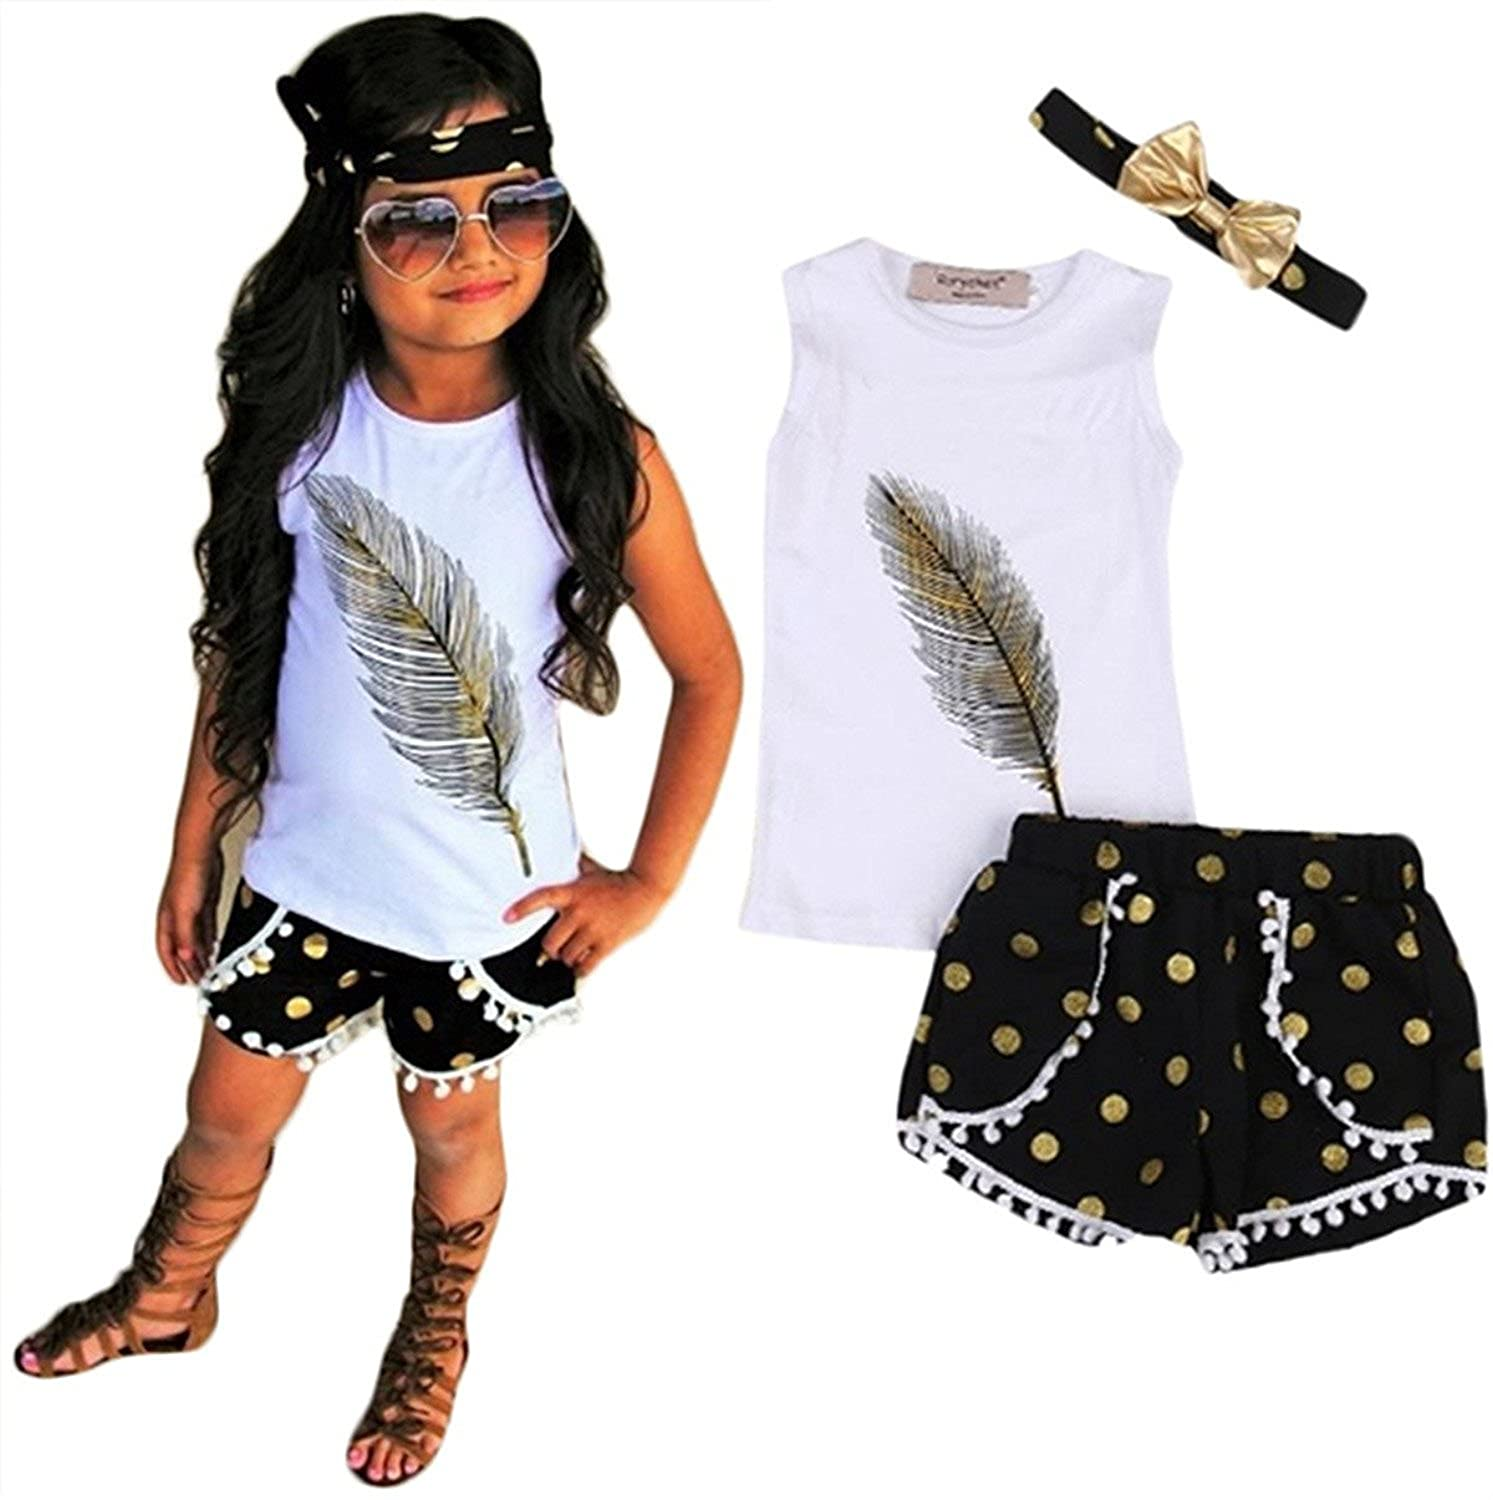 698cb170240e Amazon.com: Summer Kids Girls Feather Vest Tops + Polka dot Shorts Bottom  with Headband: Clothing